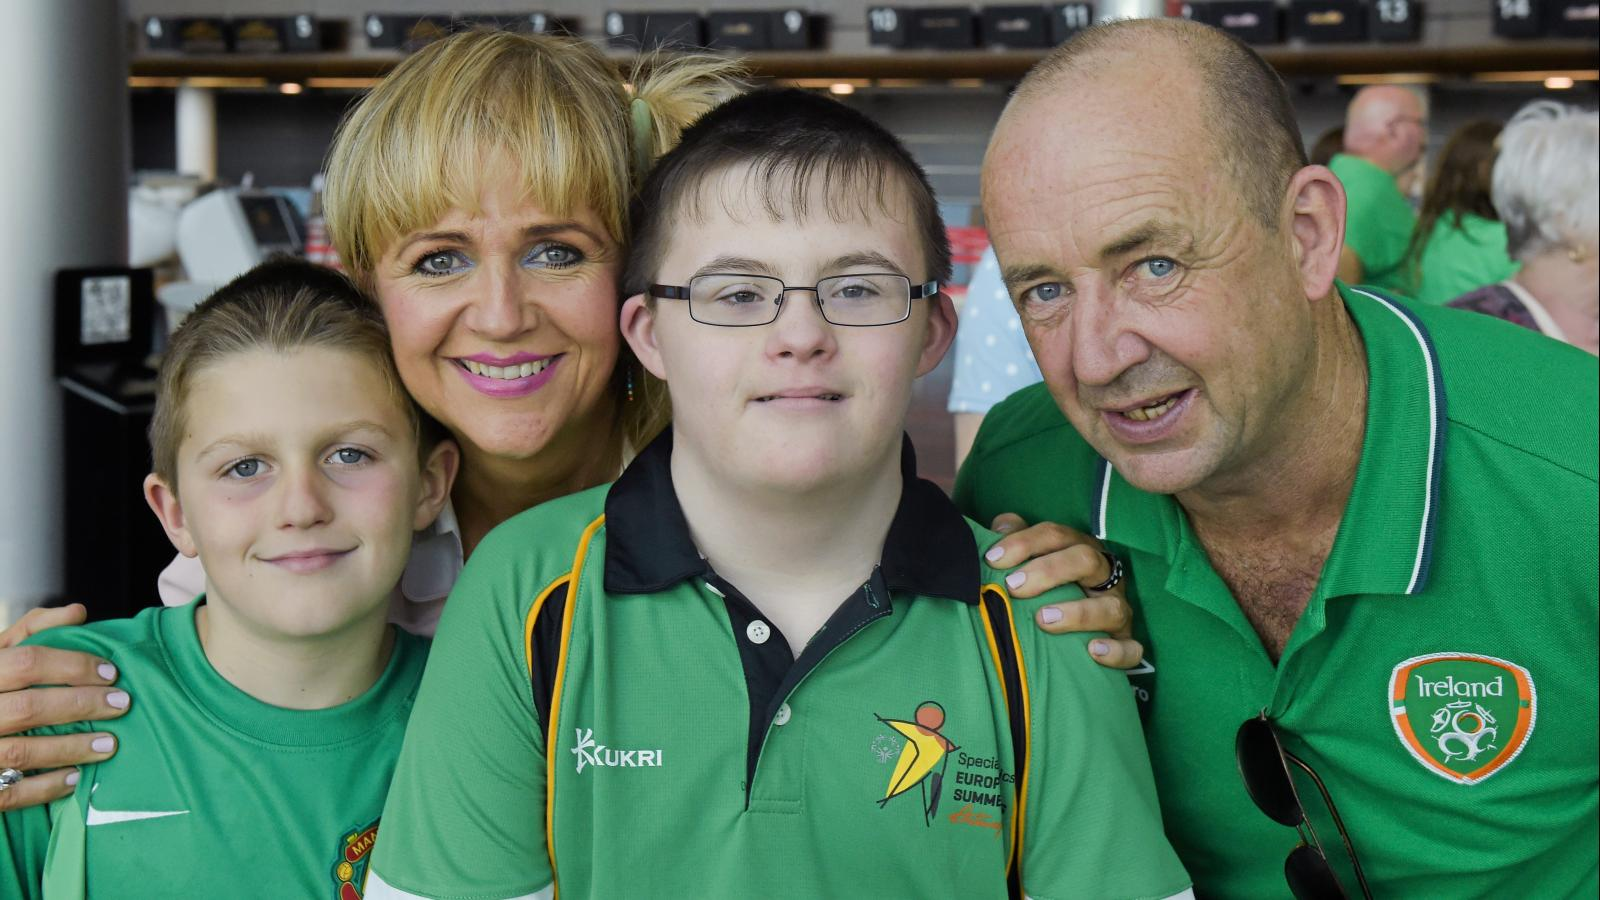 Smiling Family - Special Olympics athlete pictured with his Mum and Dad and younger brother